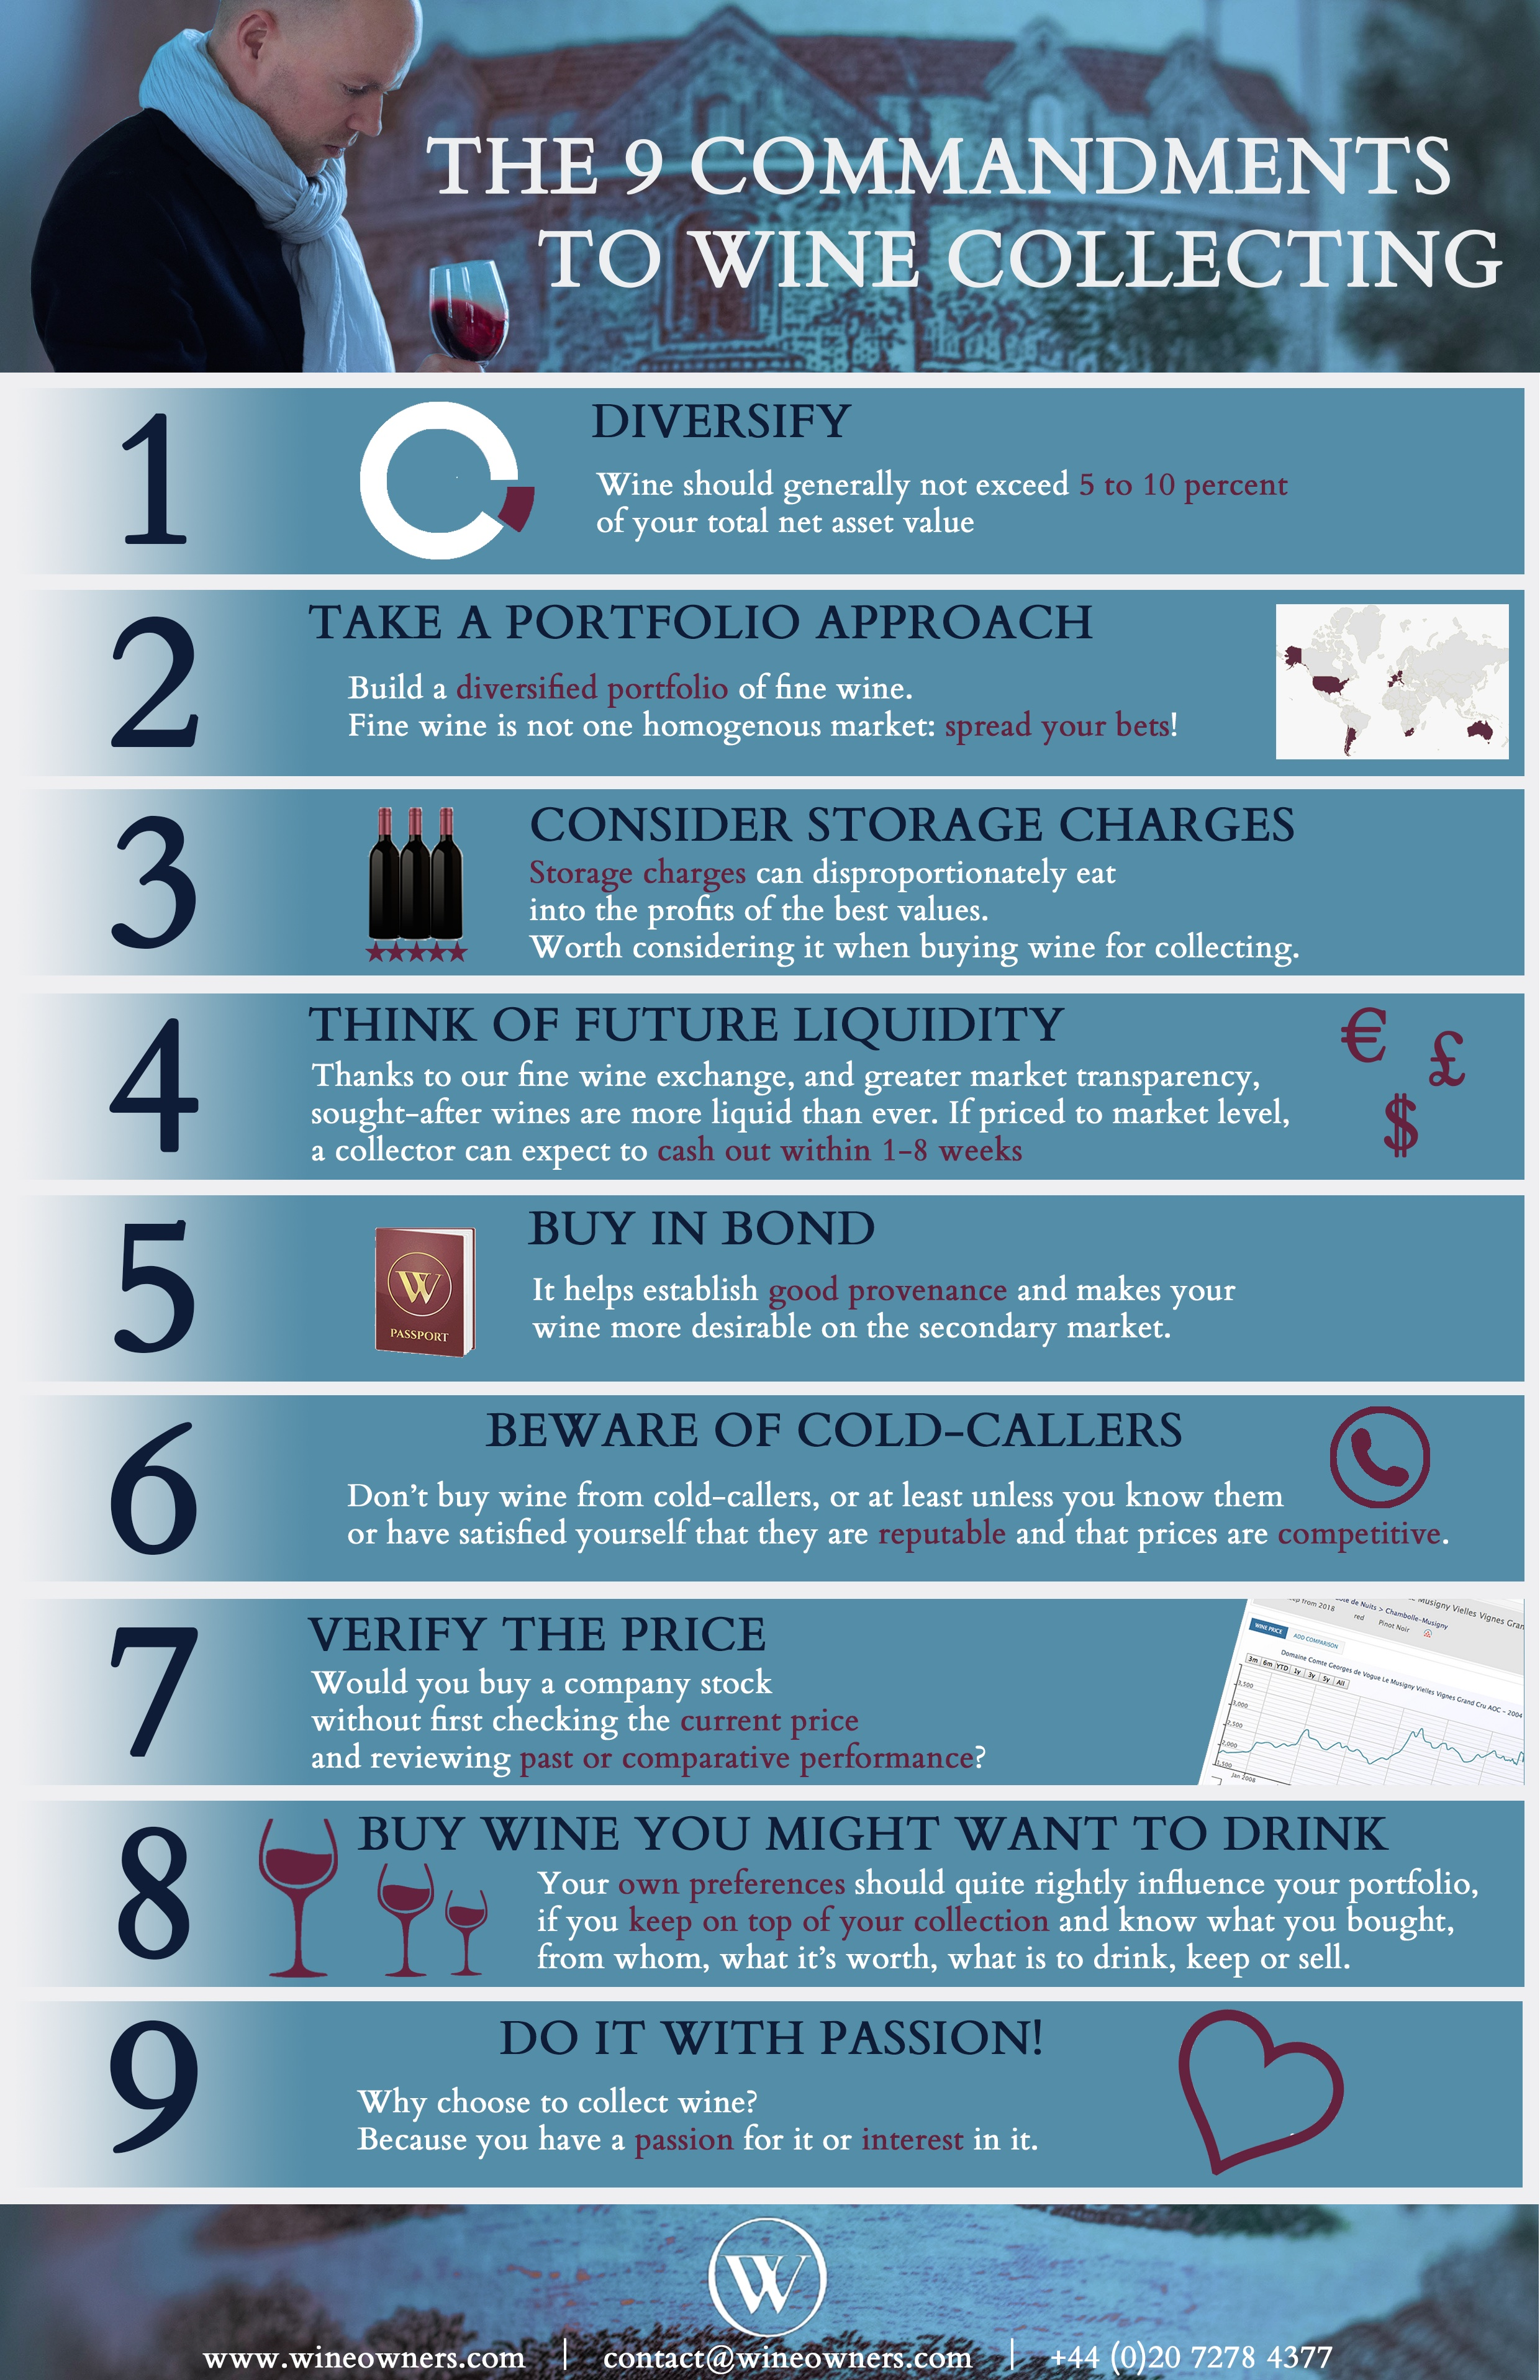 The 9 commandments to wine collecting